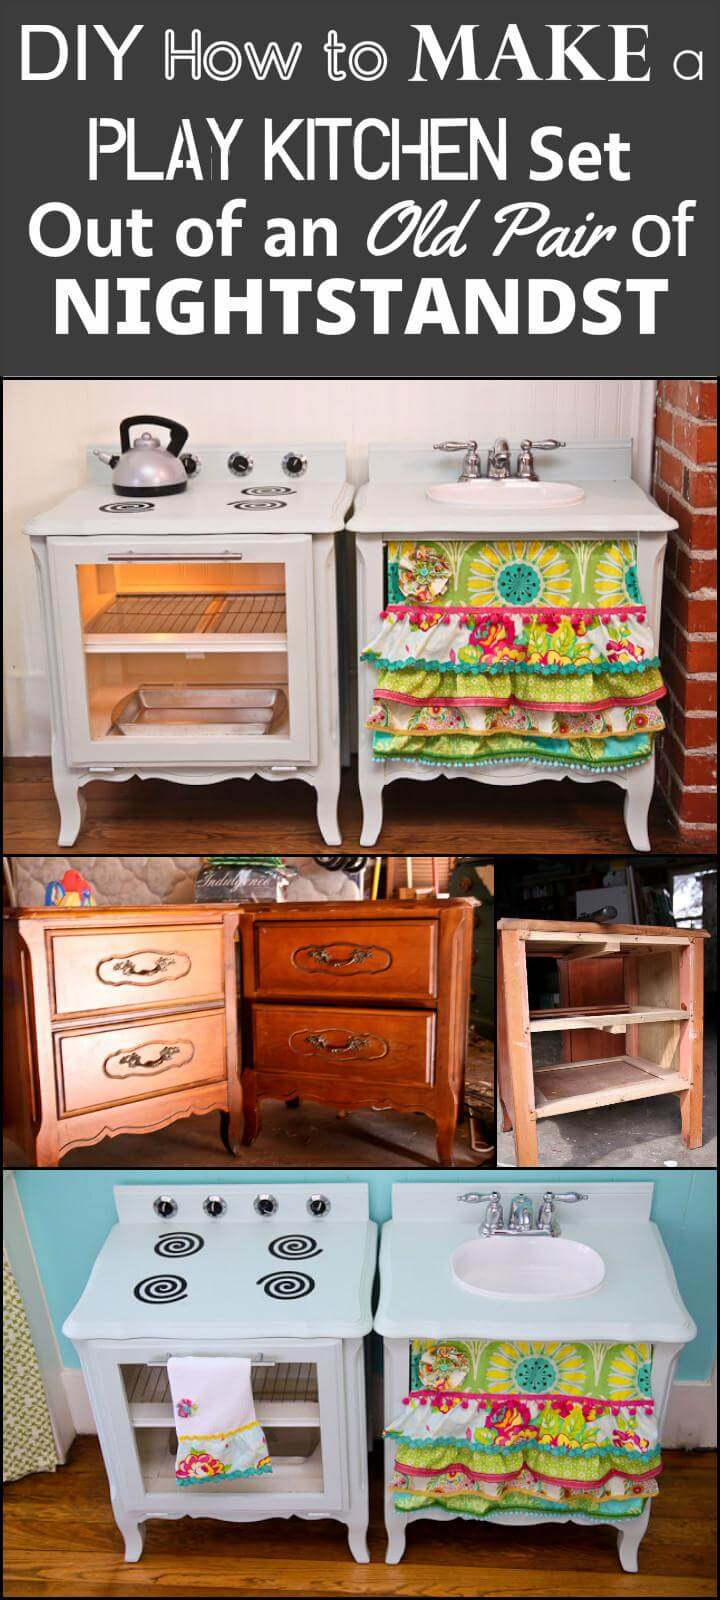 DIY repurposed old nightstand into play kitchen